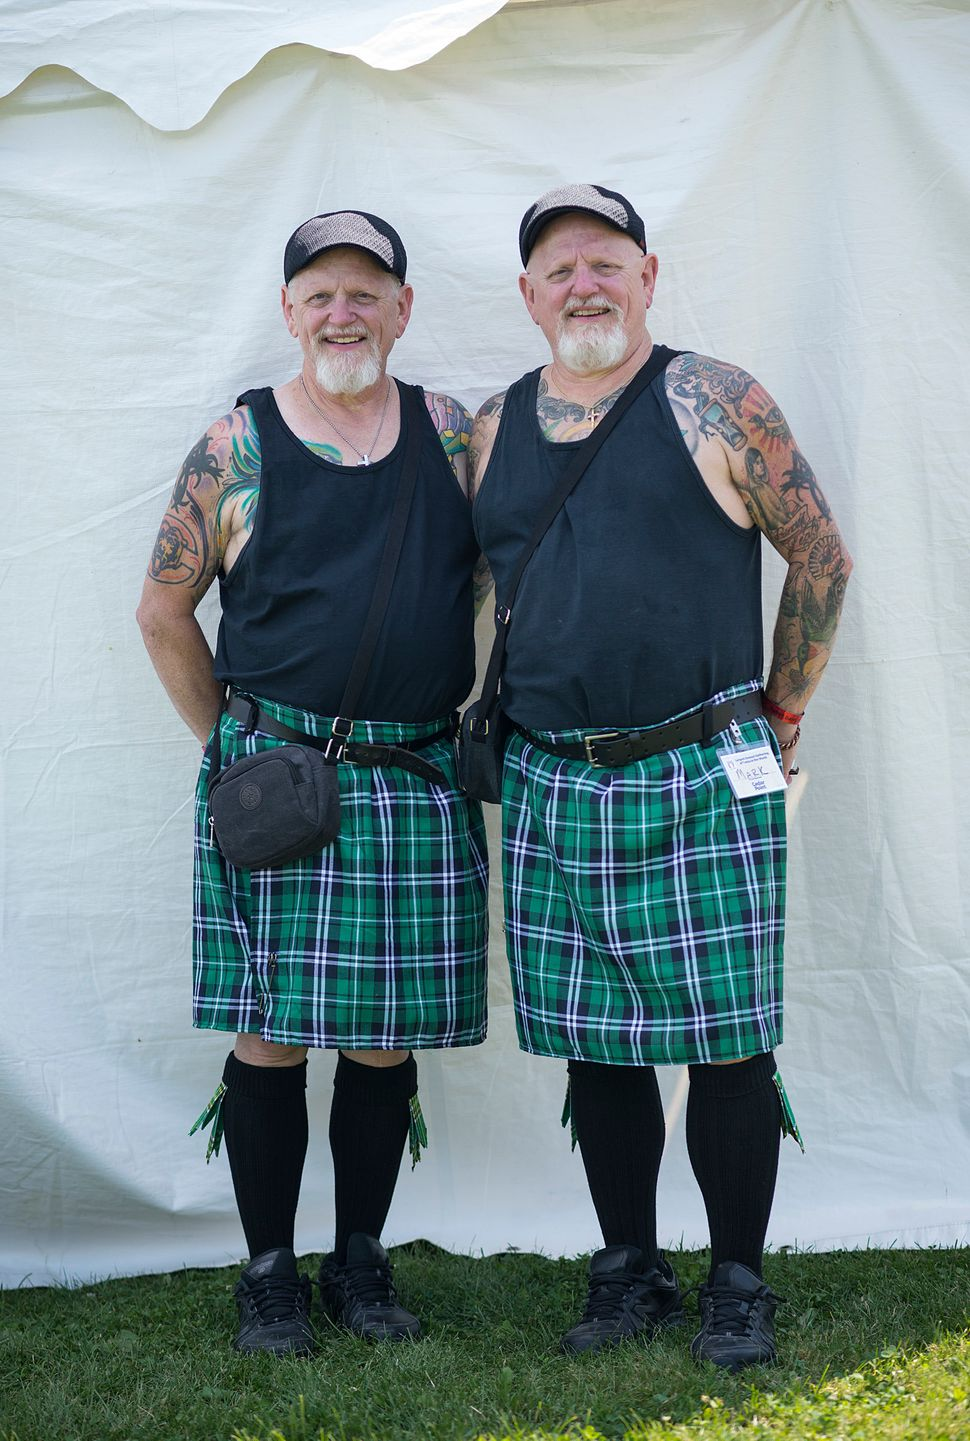 Mike (left) and Mark Smith show off their Scottish background.